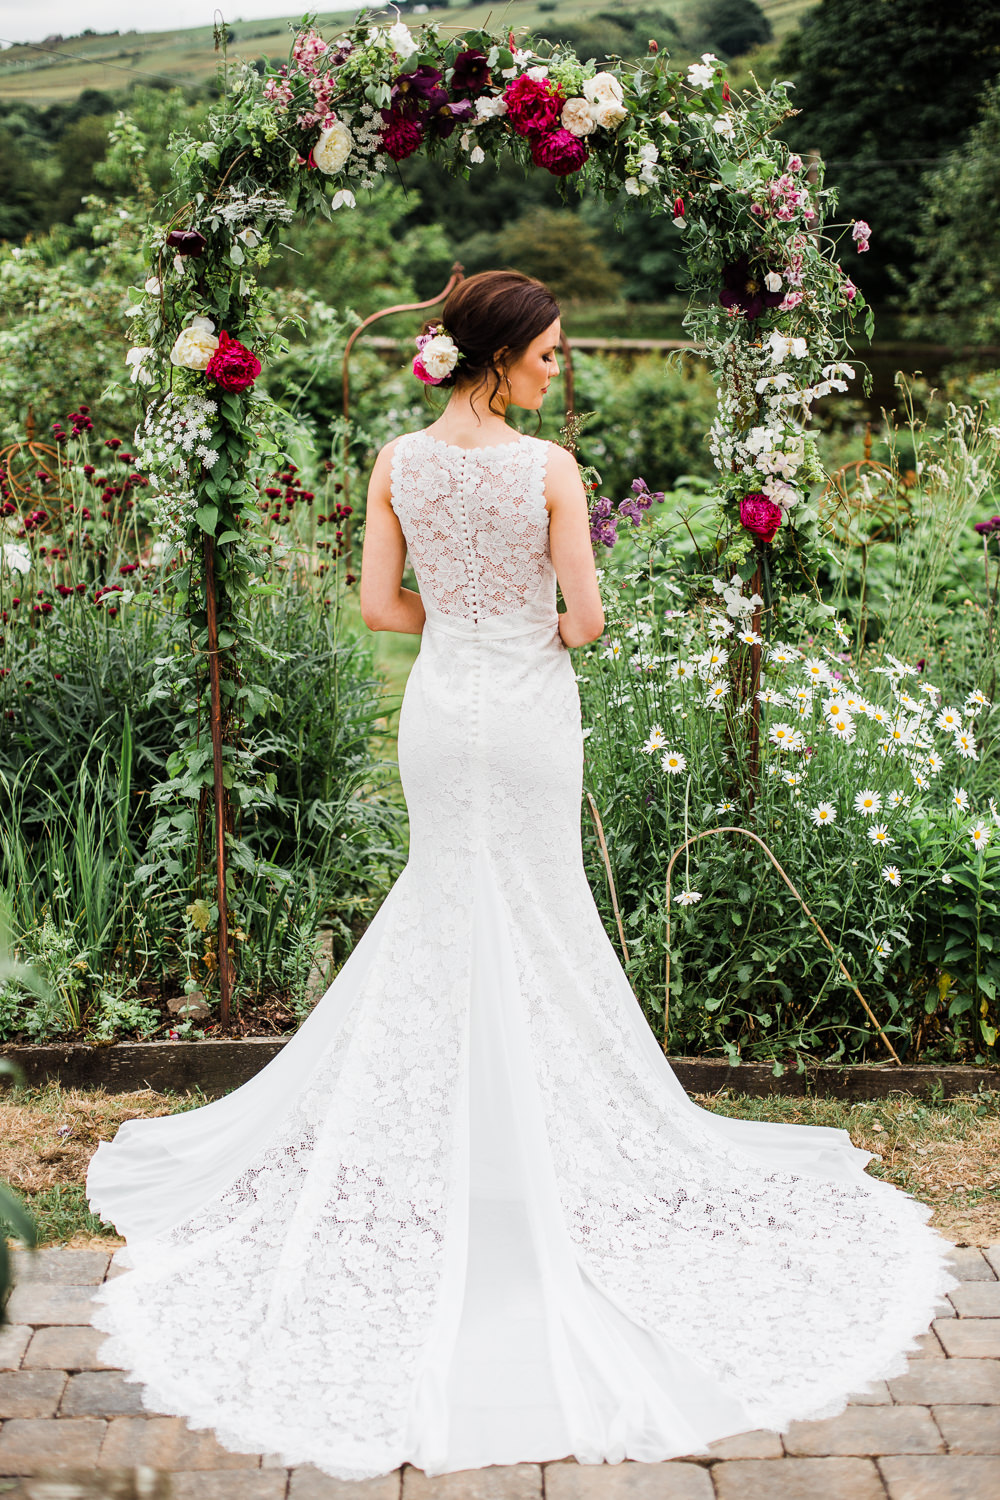 Bride Bridal Dress Gown Lace Train Colourful Bohemian Floral Wedding Ideas Anna Beth Photography